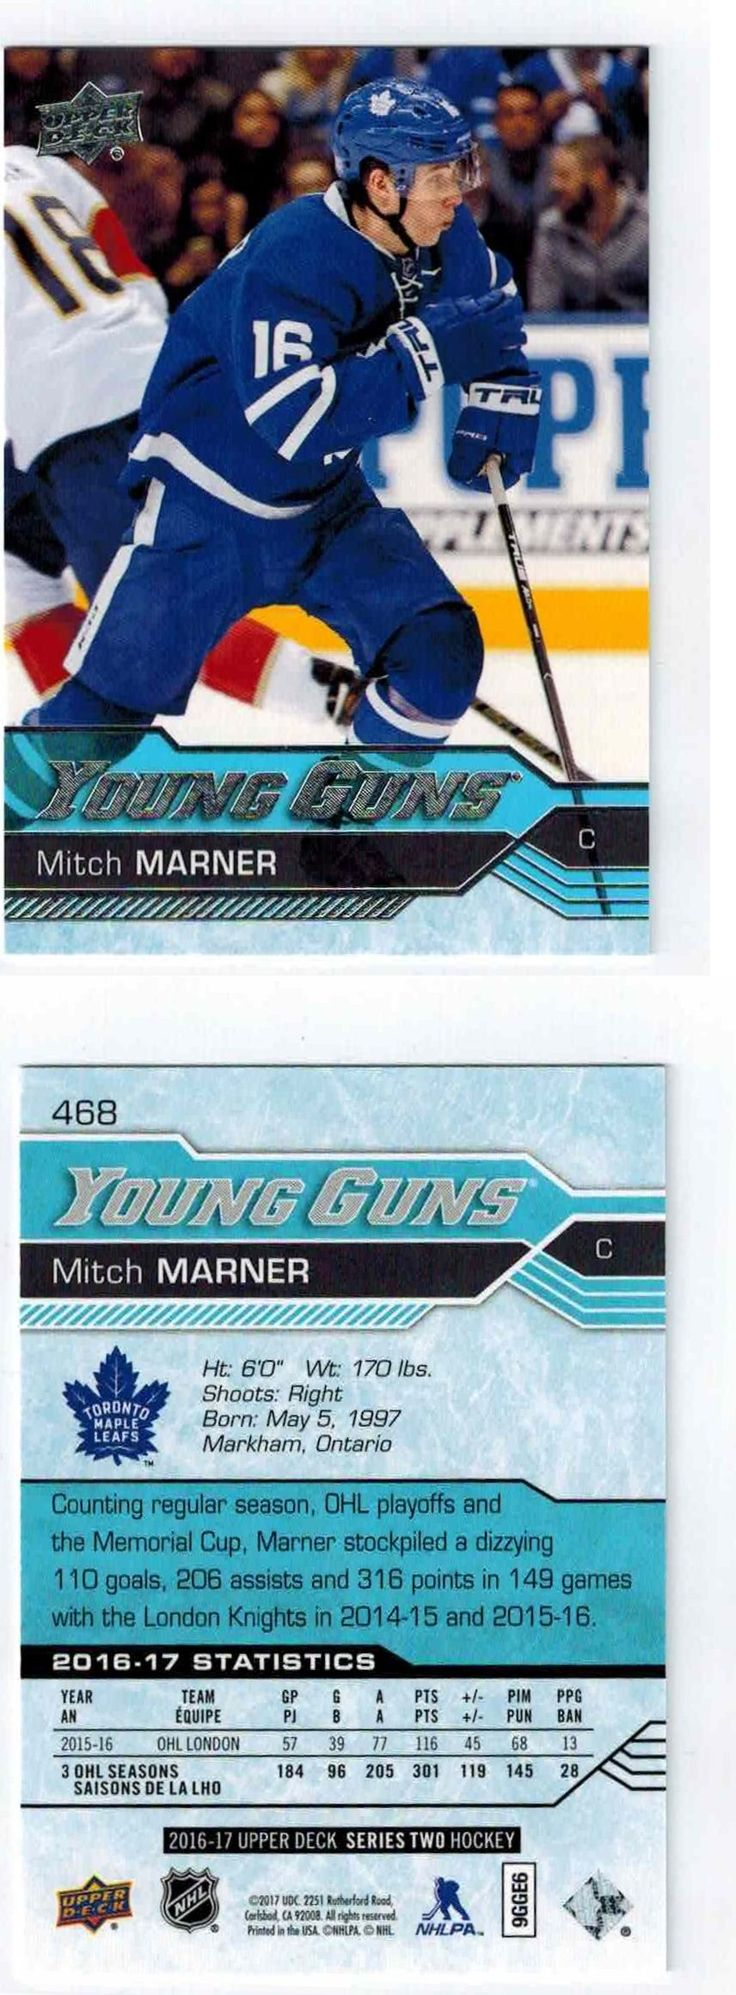 Ice Hockey Cards 216: 2016-17 Upper Deck - Mitch Marner - #468 Young Guns -> BUY IT NOW ONLY: $49.99 on eBay!